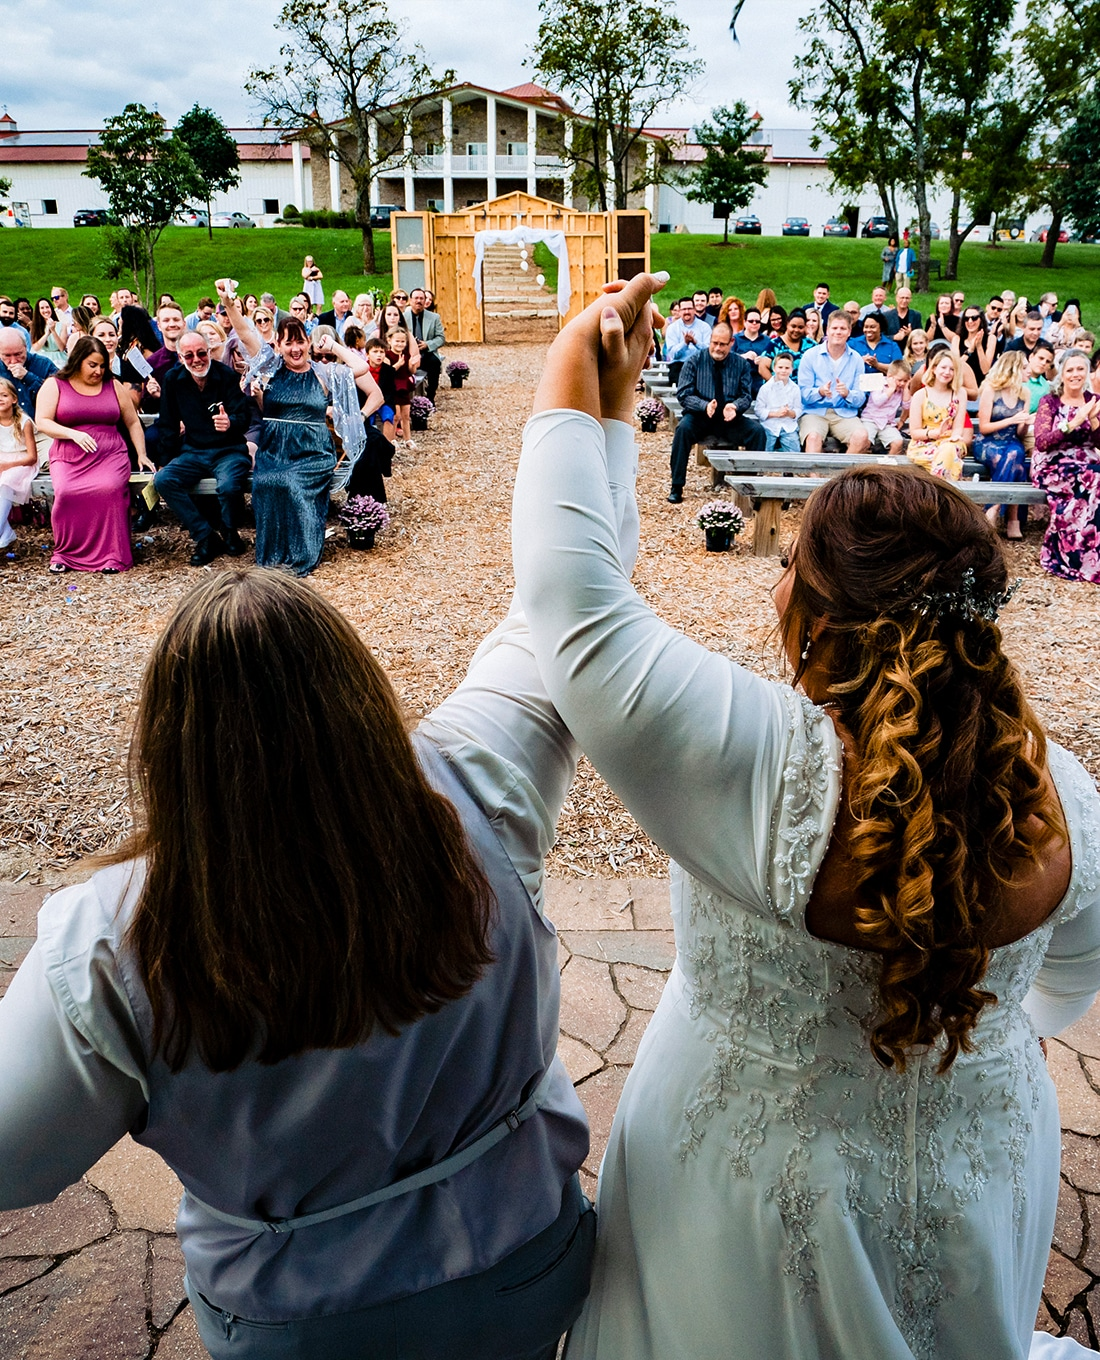 A colorful, candid picture taken from behind two brides as they raise their arms in victory at the end of their wedding ceremony, as their family and friends cheer them on.